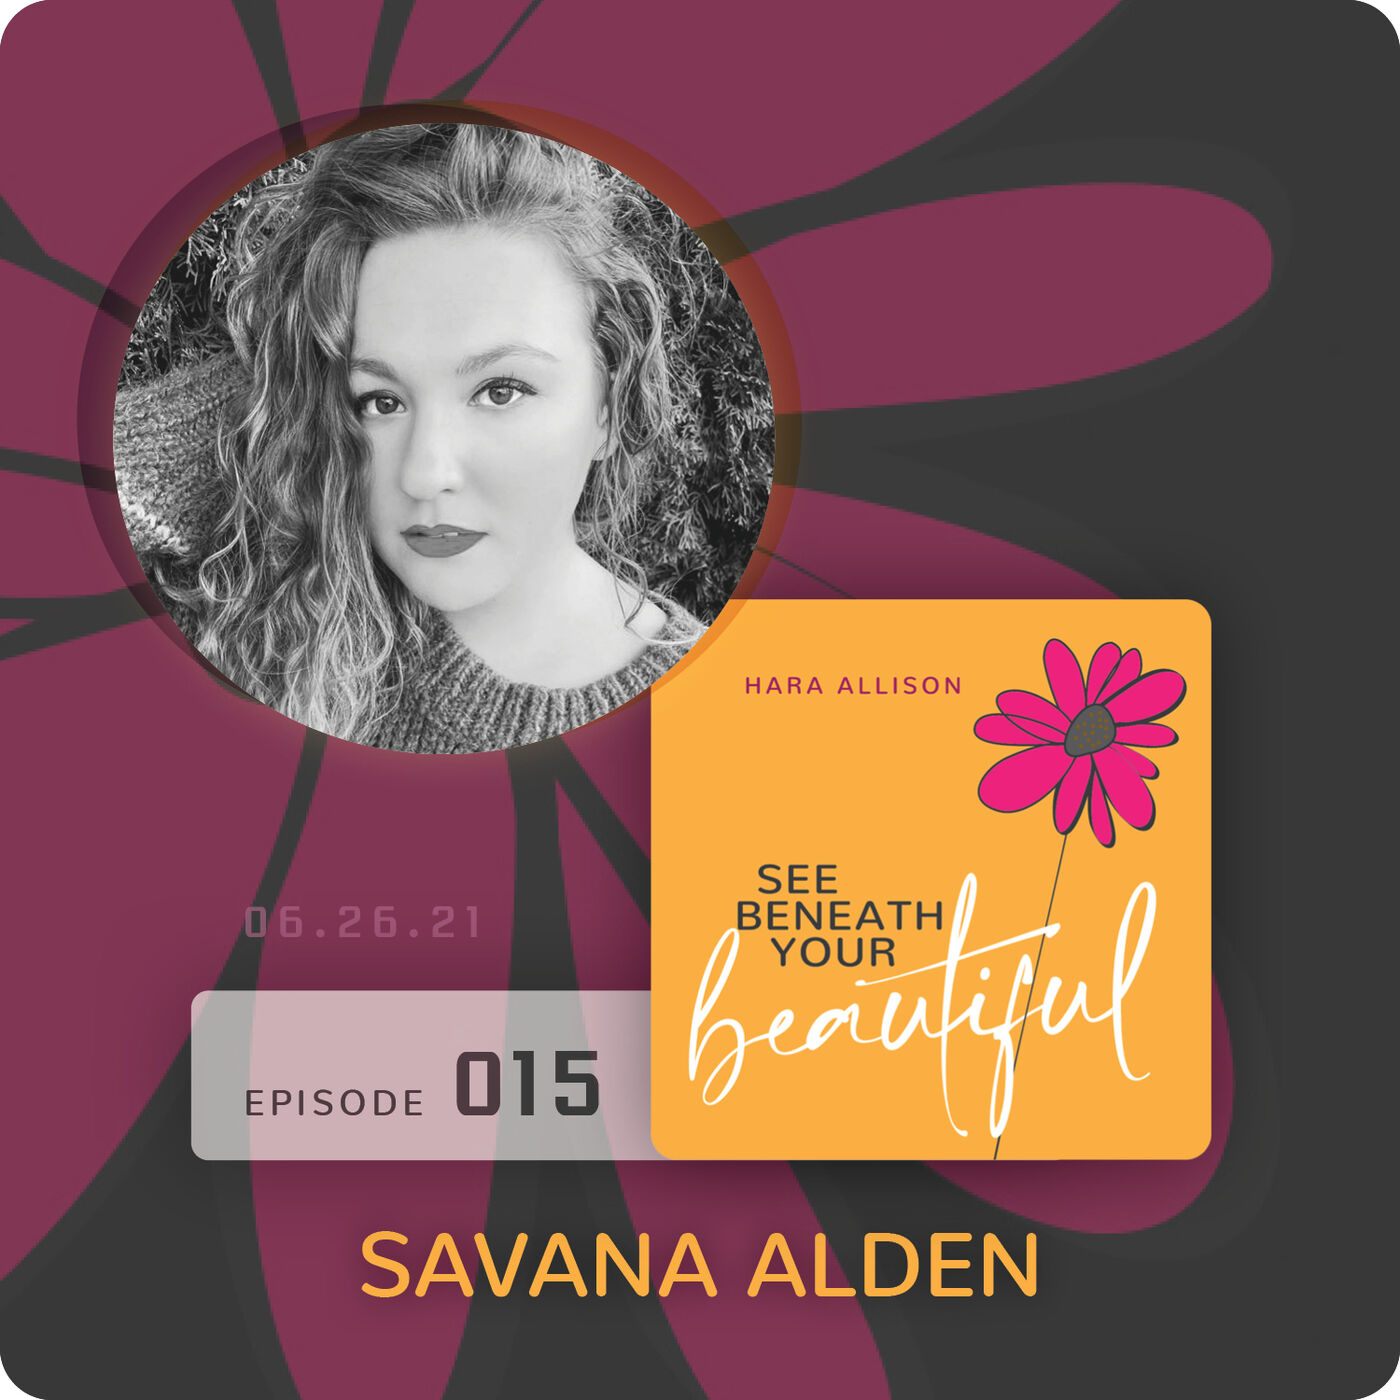 015. Savana Alden discusses self love, anxiety, anger, becoming the bush, getting nauseous at the smell of cinnamon because of Fireball, being Mrs. Claus and not an elf, spitting facts, having a John Mulaney moment and having a psycho mom